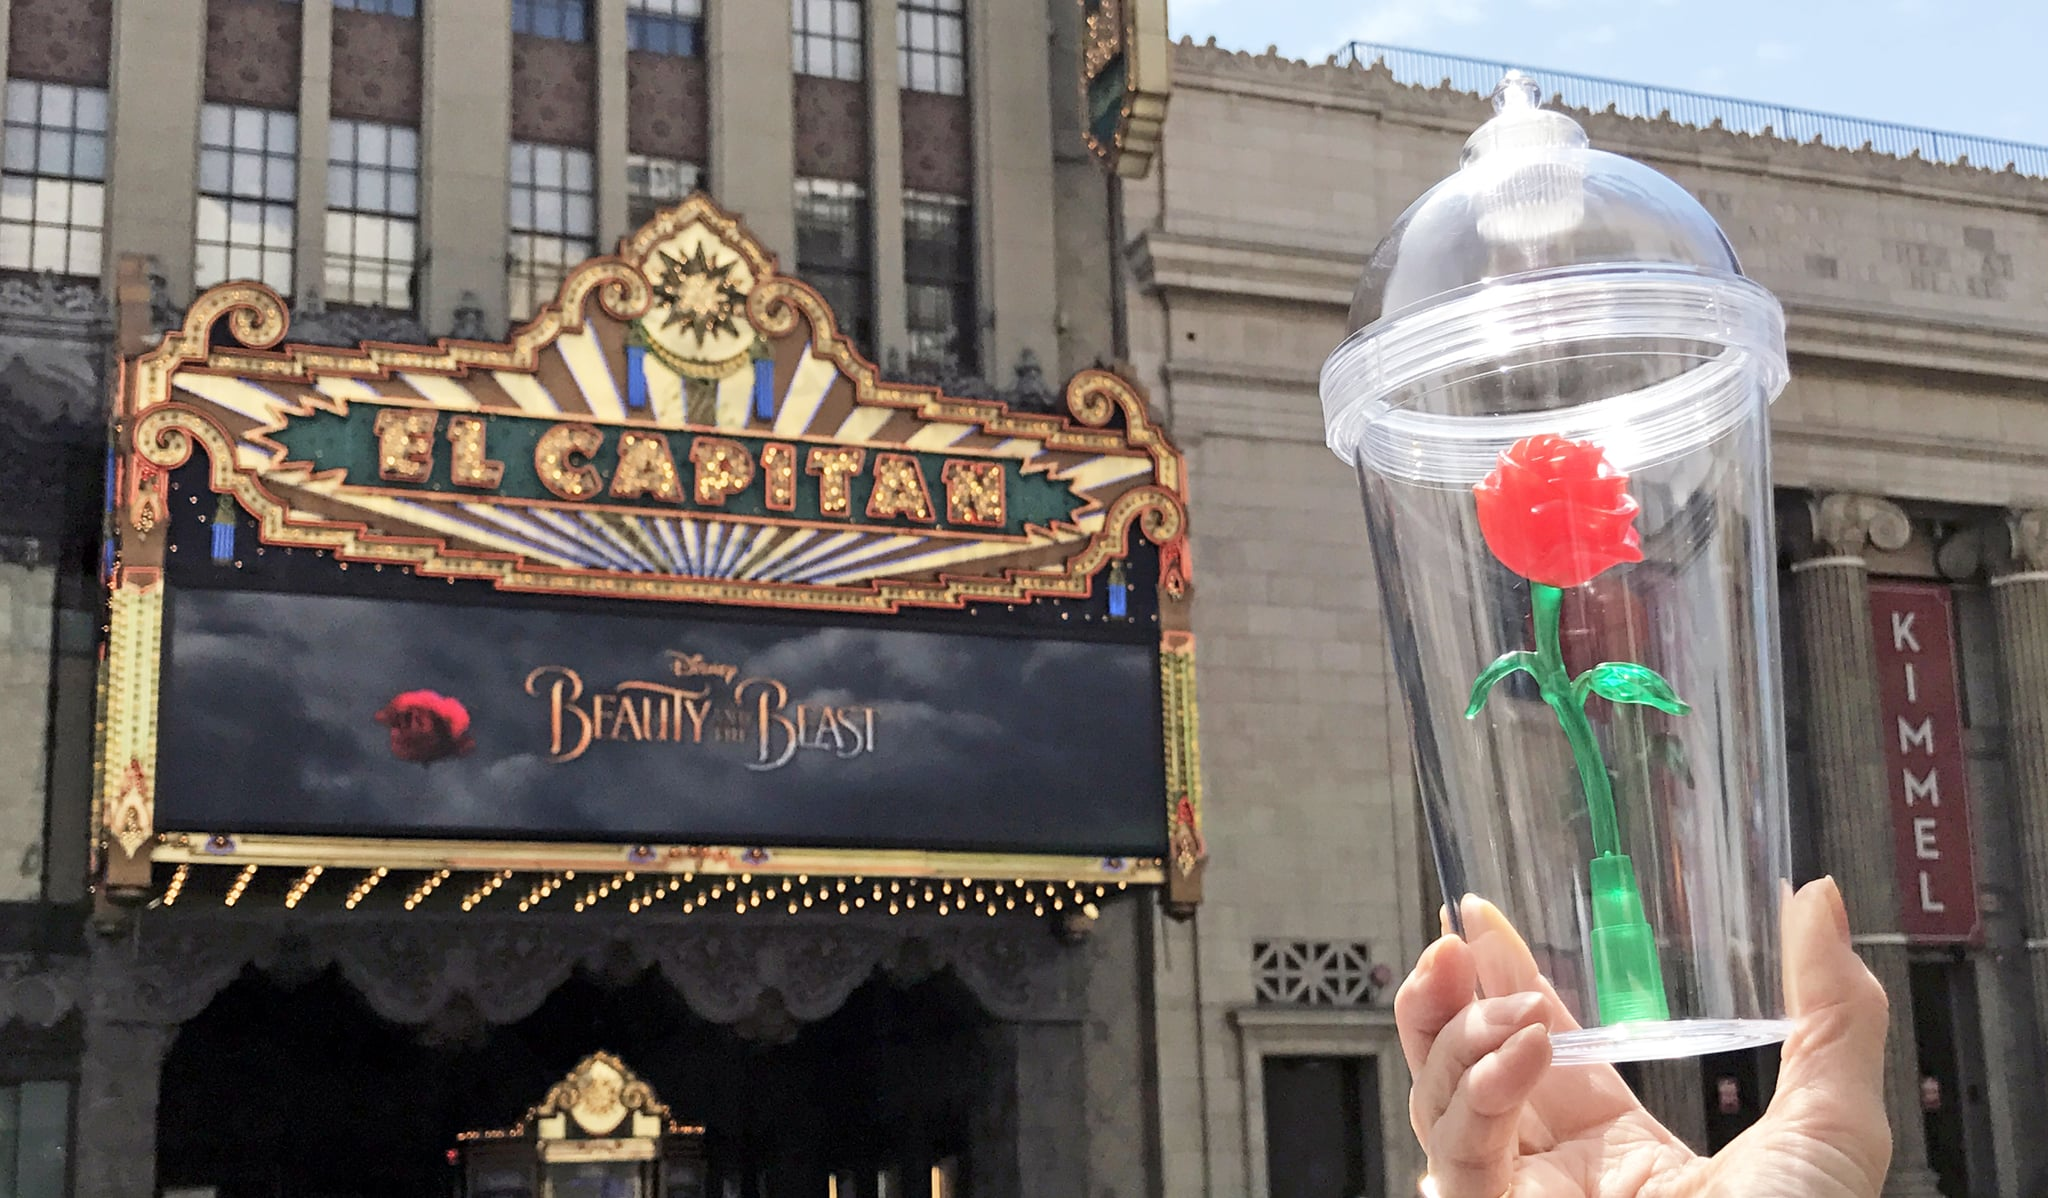 Missed your chance to the Beauty and the Beast rose cup when they went on sale at Disney World and Disneyland Well don t you worry because I found